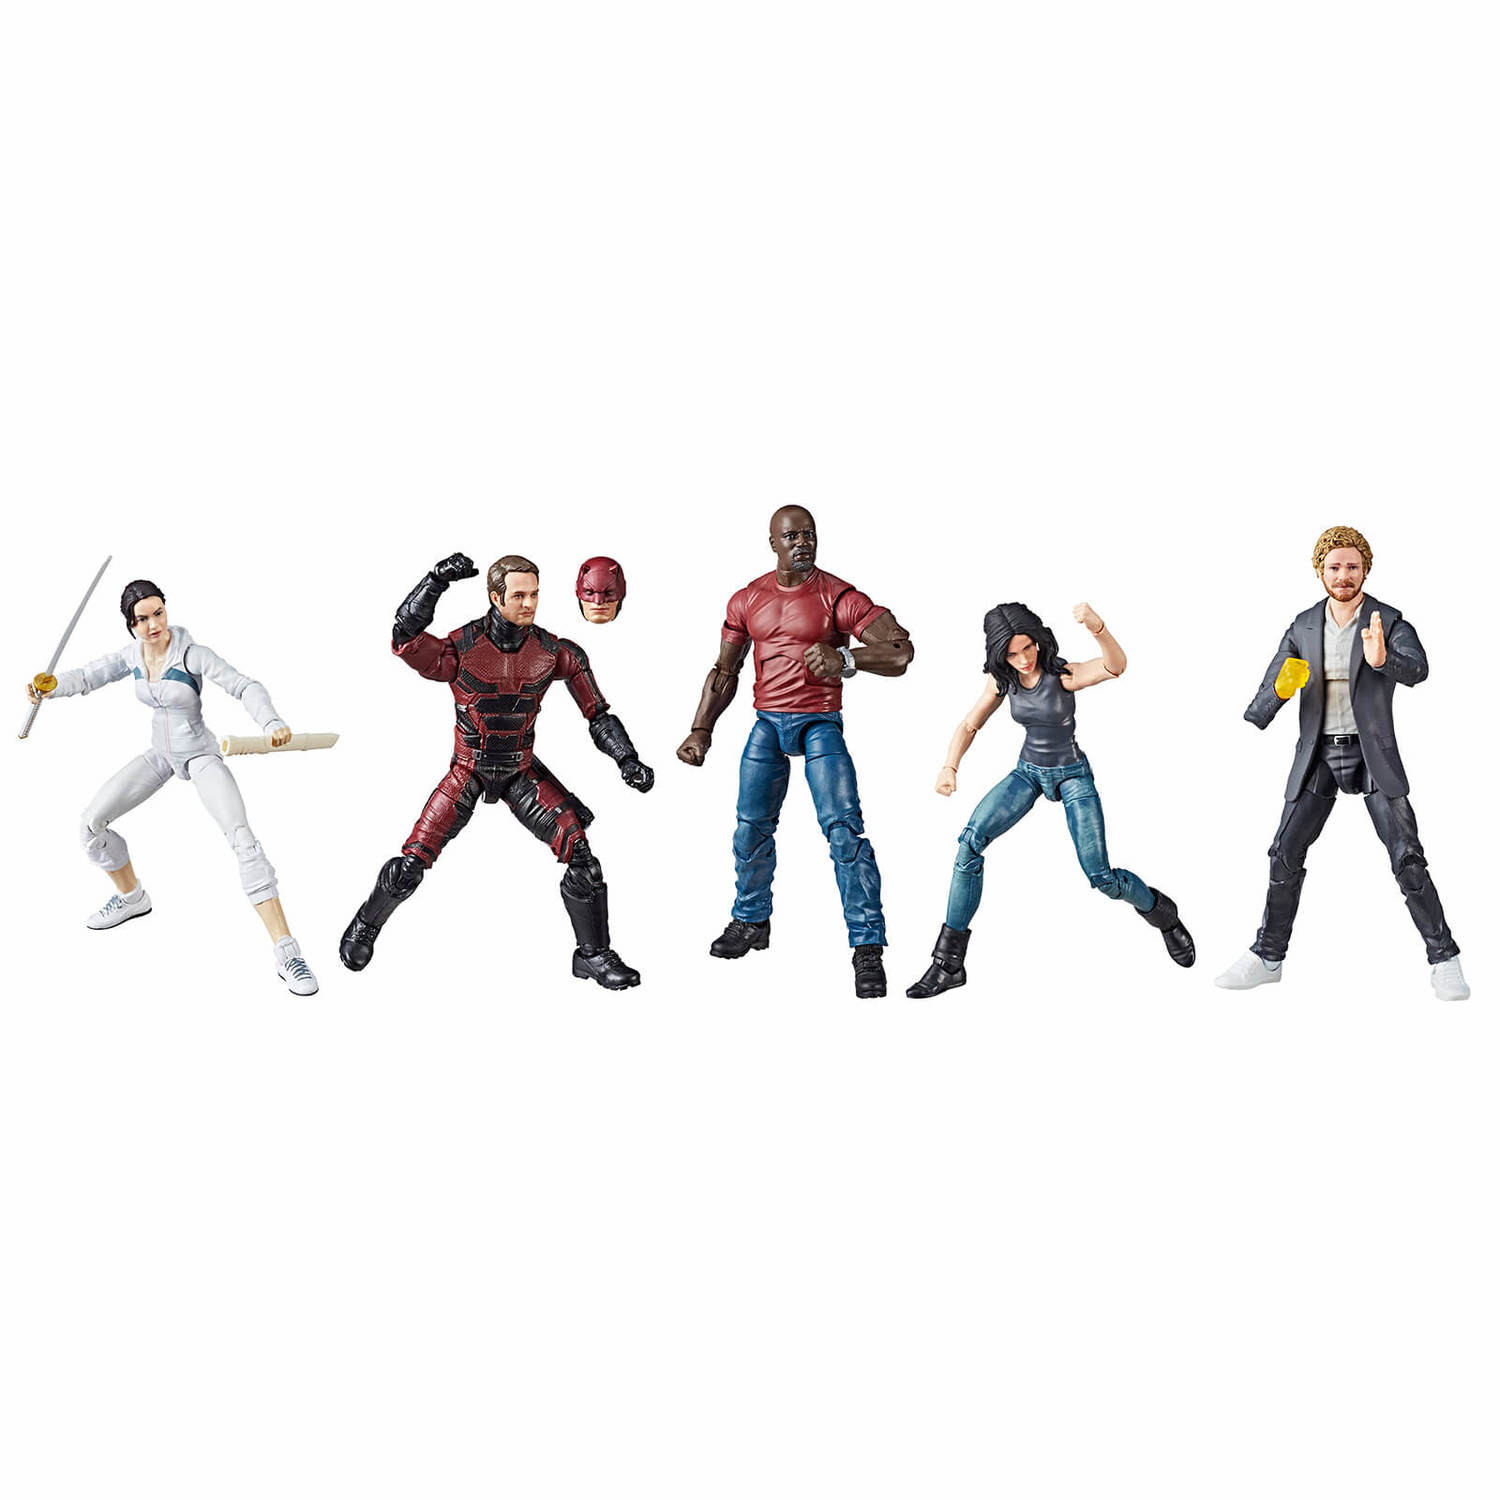 HASBRO MARVEL LEGENDS SERIES défenseurs Rail AUTHORITY 5-Pack de San Diego comic-con 2018 Exclusive